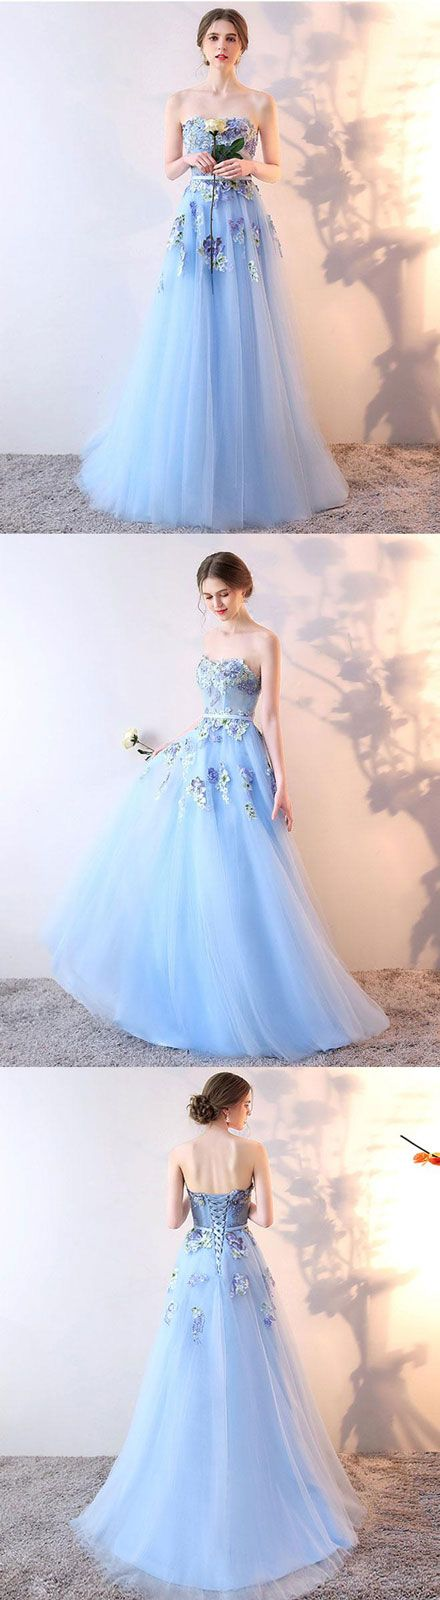 Stylish tulle lace long prom dress, lace evening dress, blue bridesmaid dress